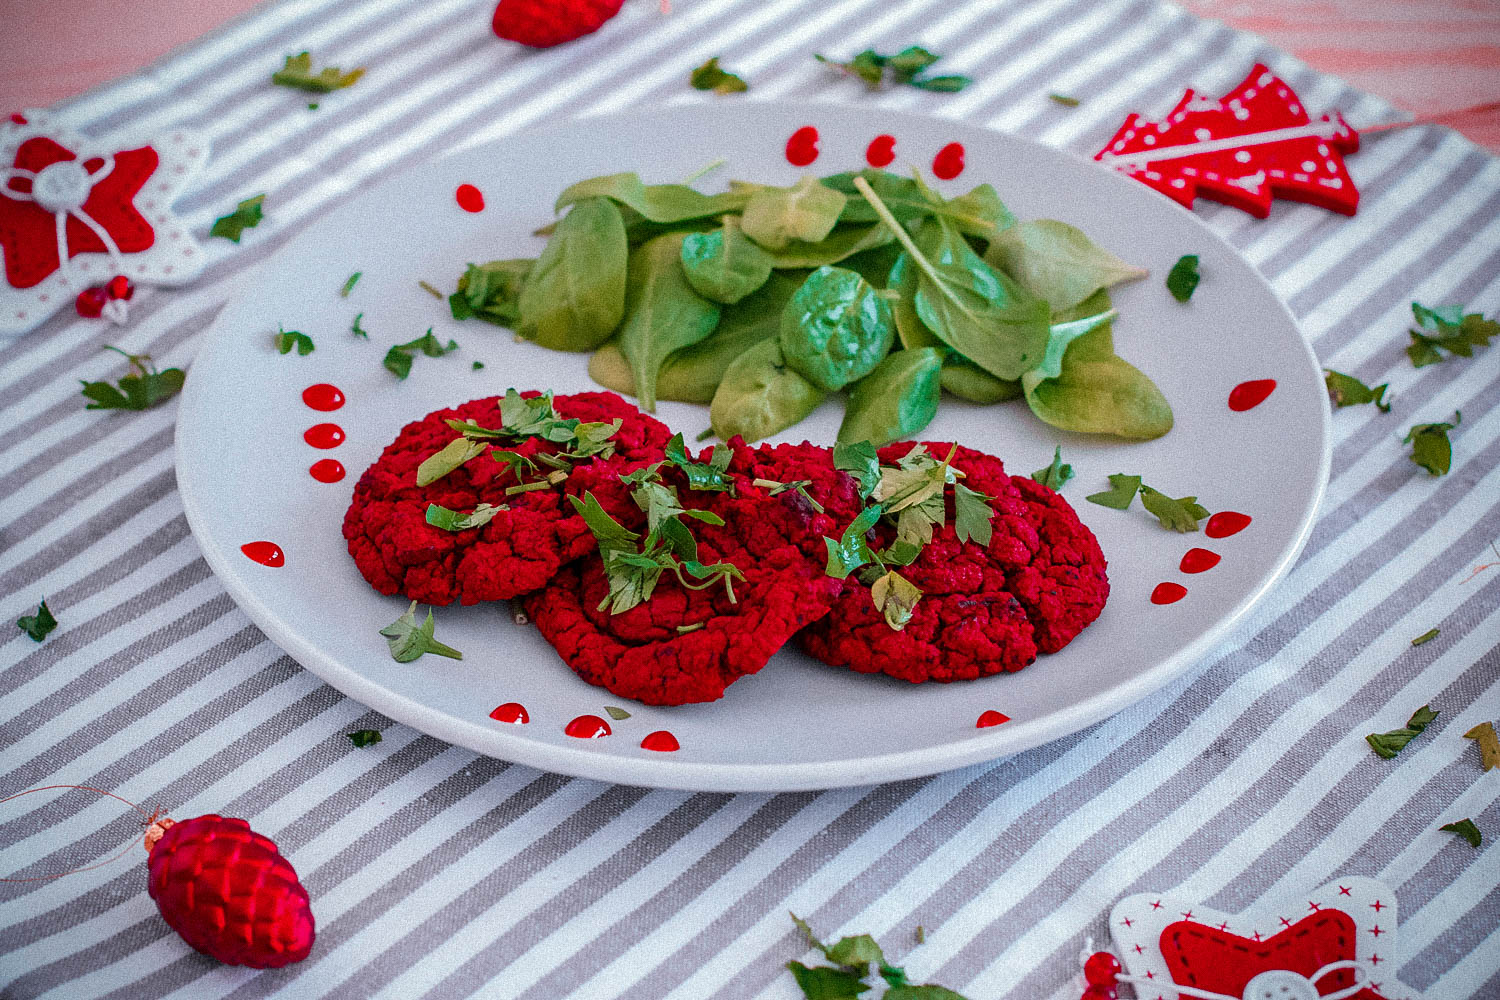 beet-and-lentils-burger-recipe (6)